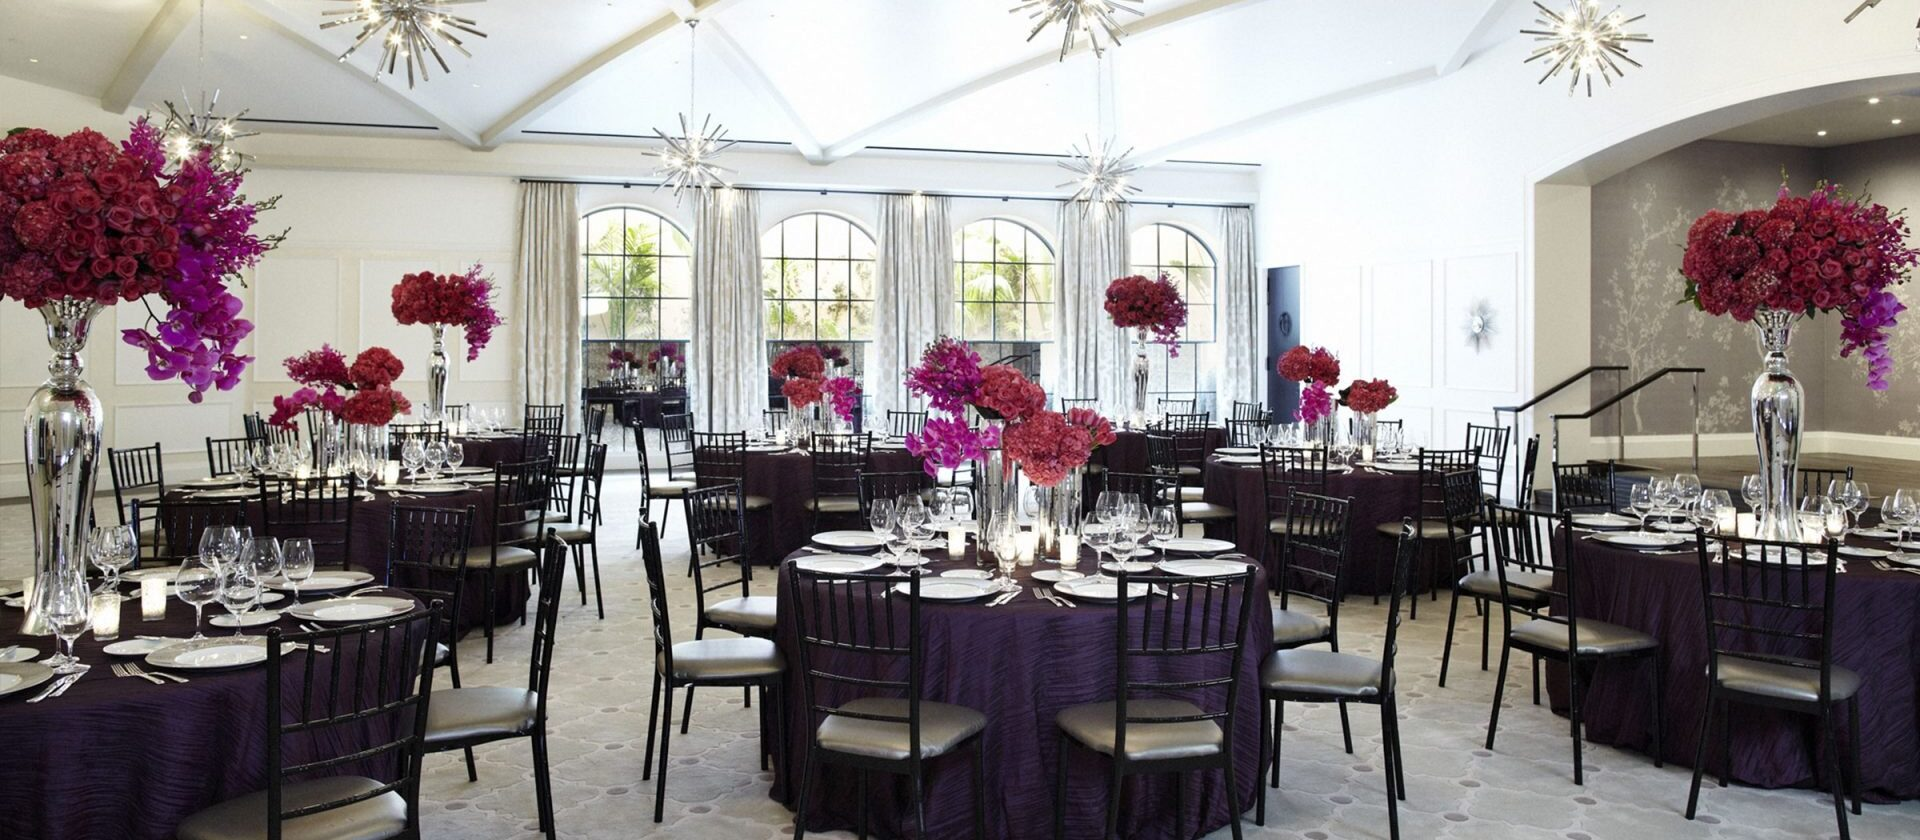 garden ballroom rounds set for formal event